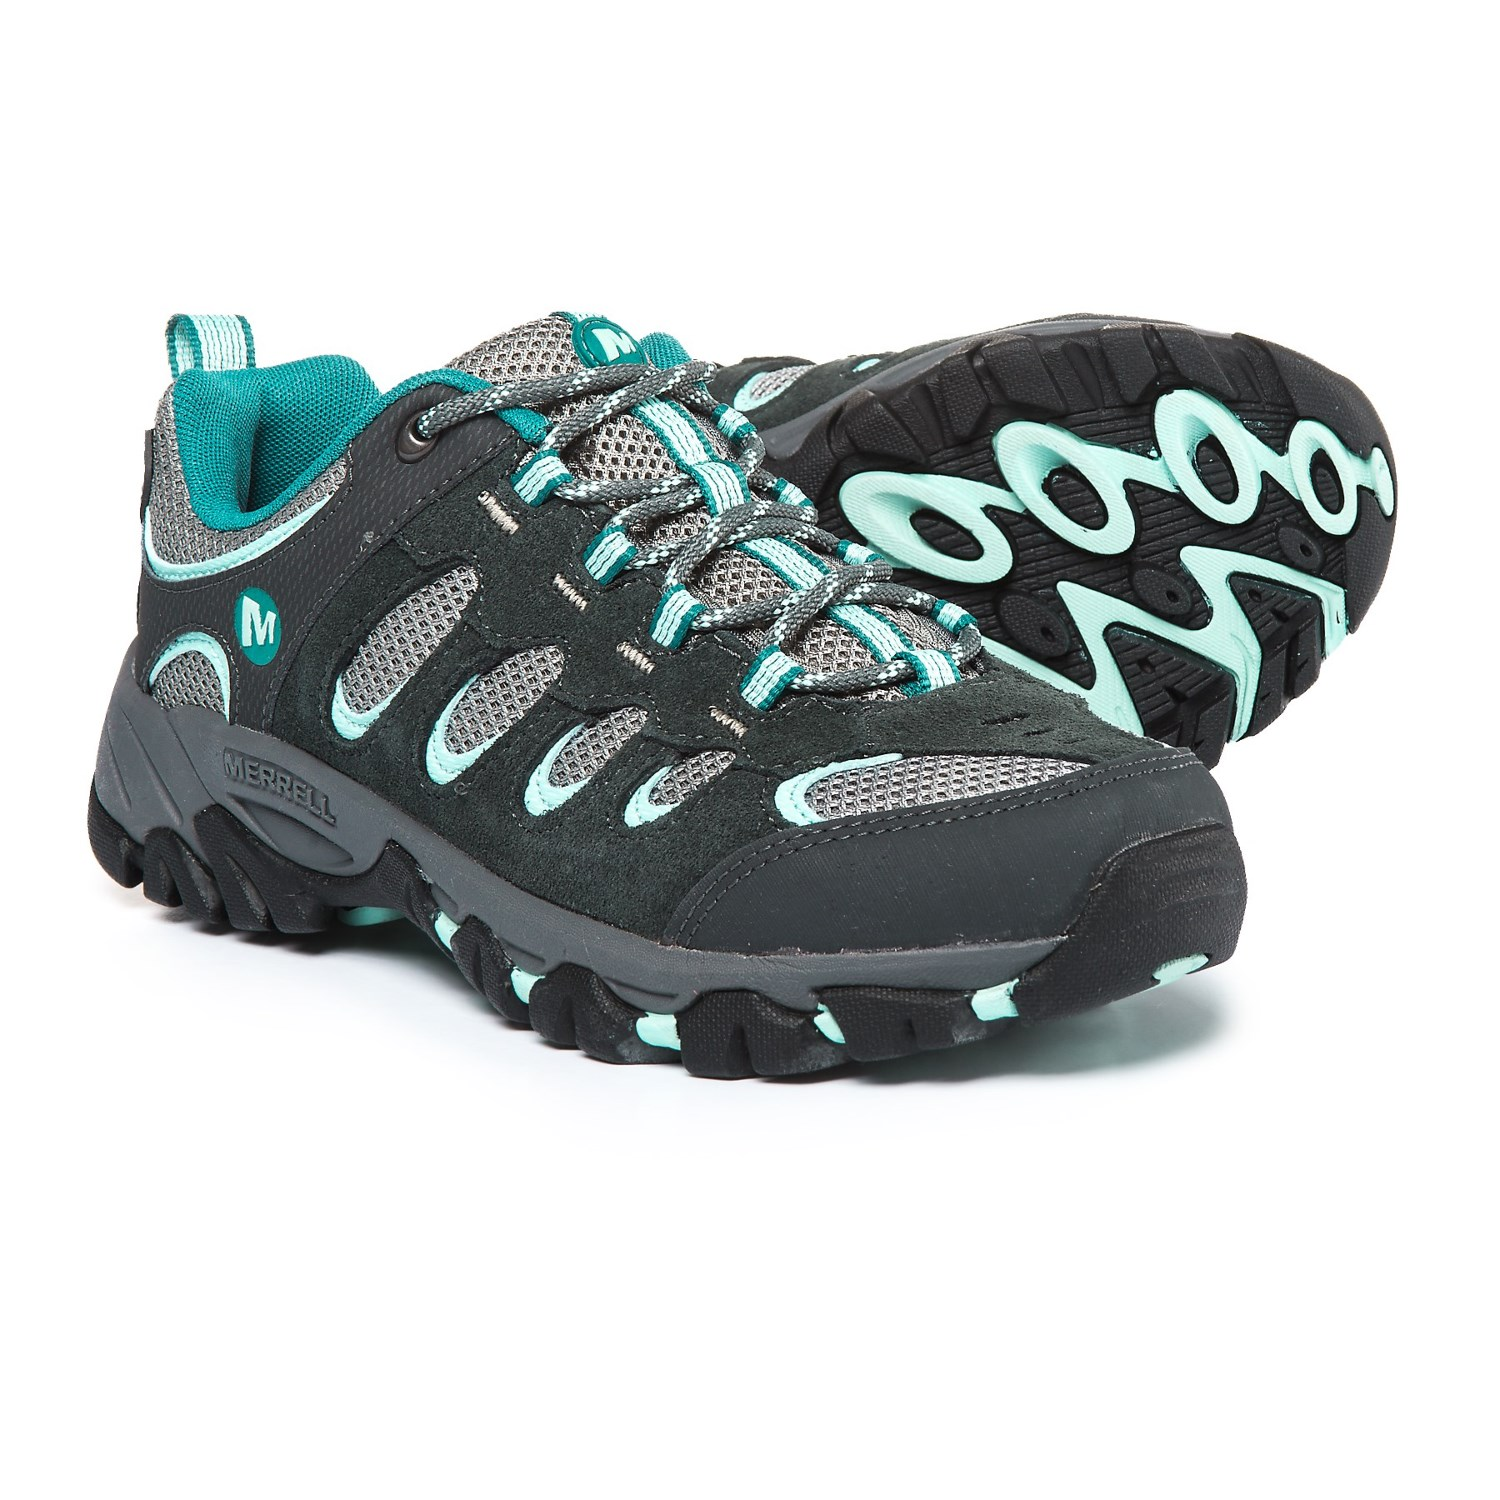 Sierra Trading Post Womens Hiking Shoes